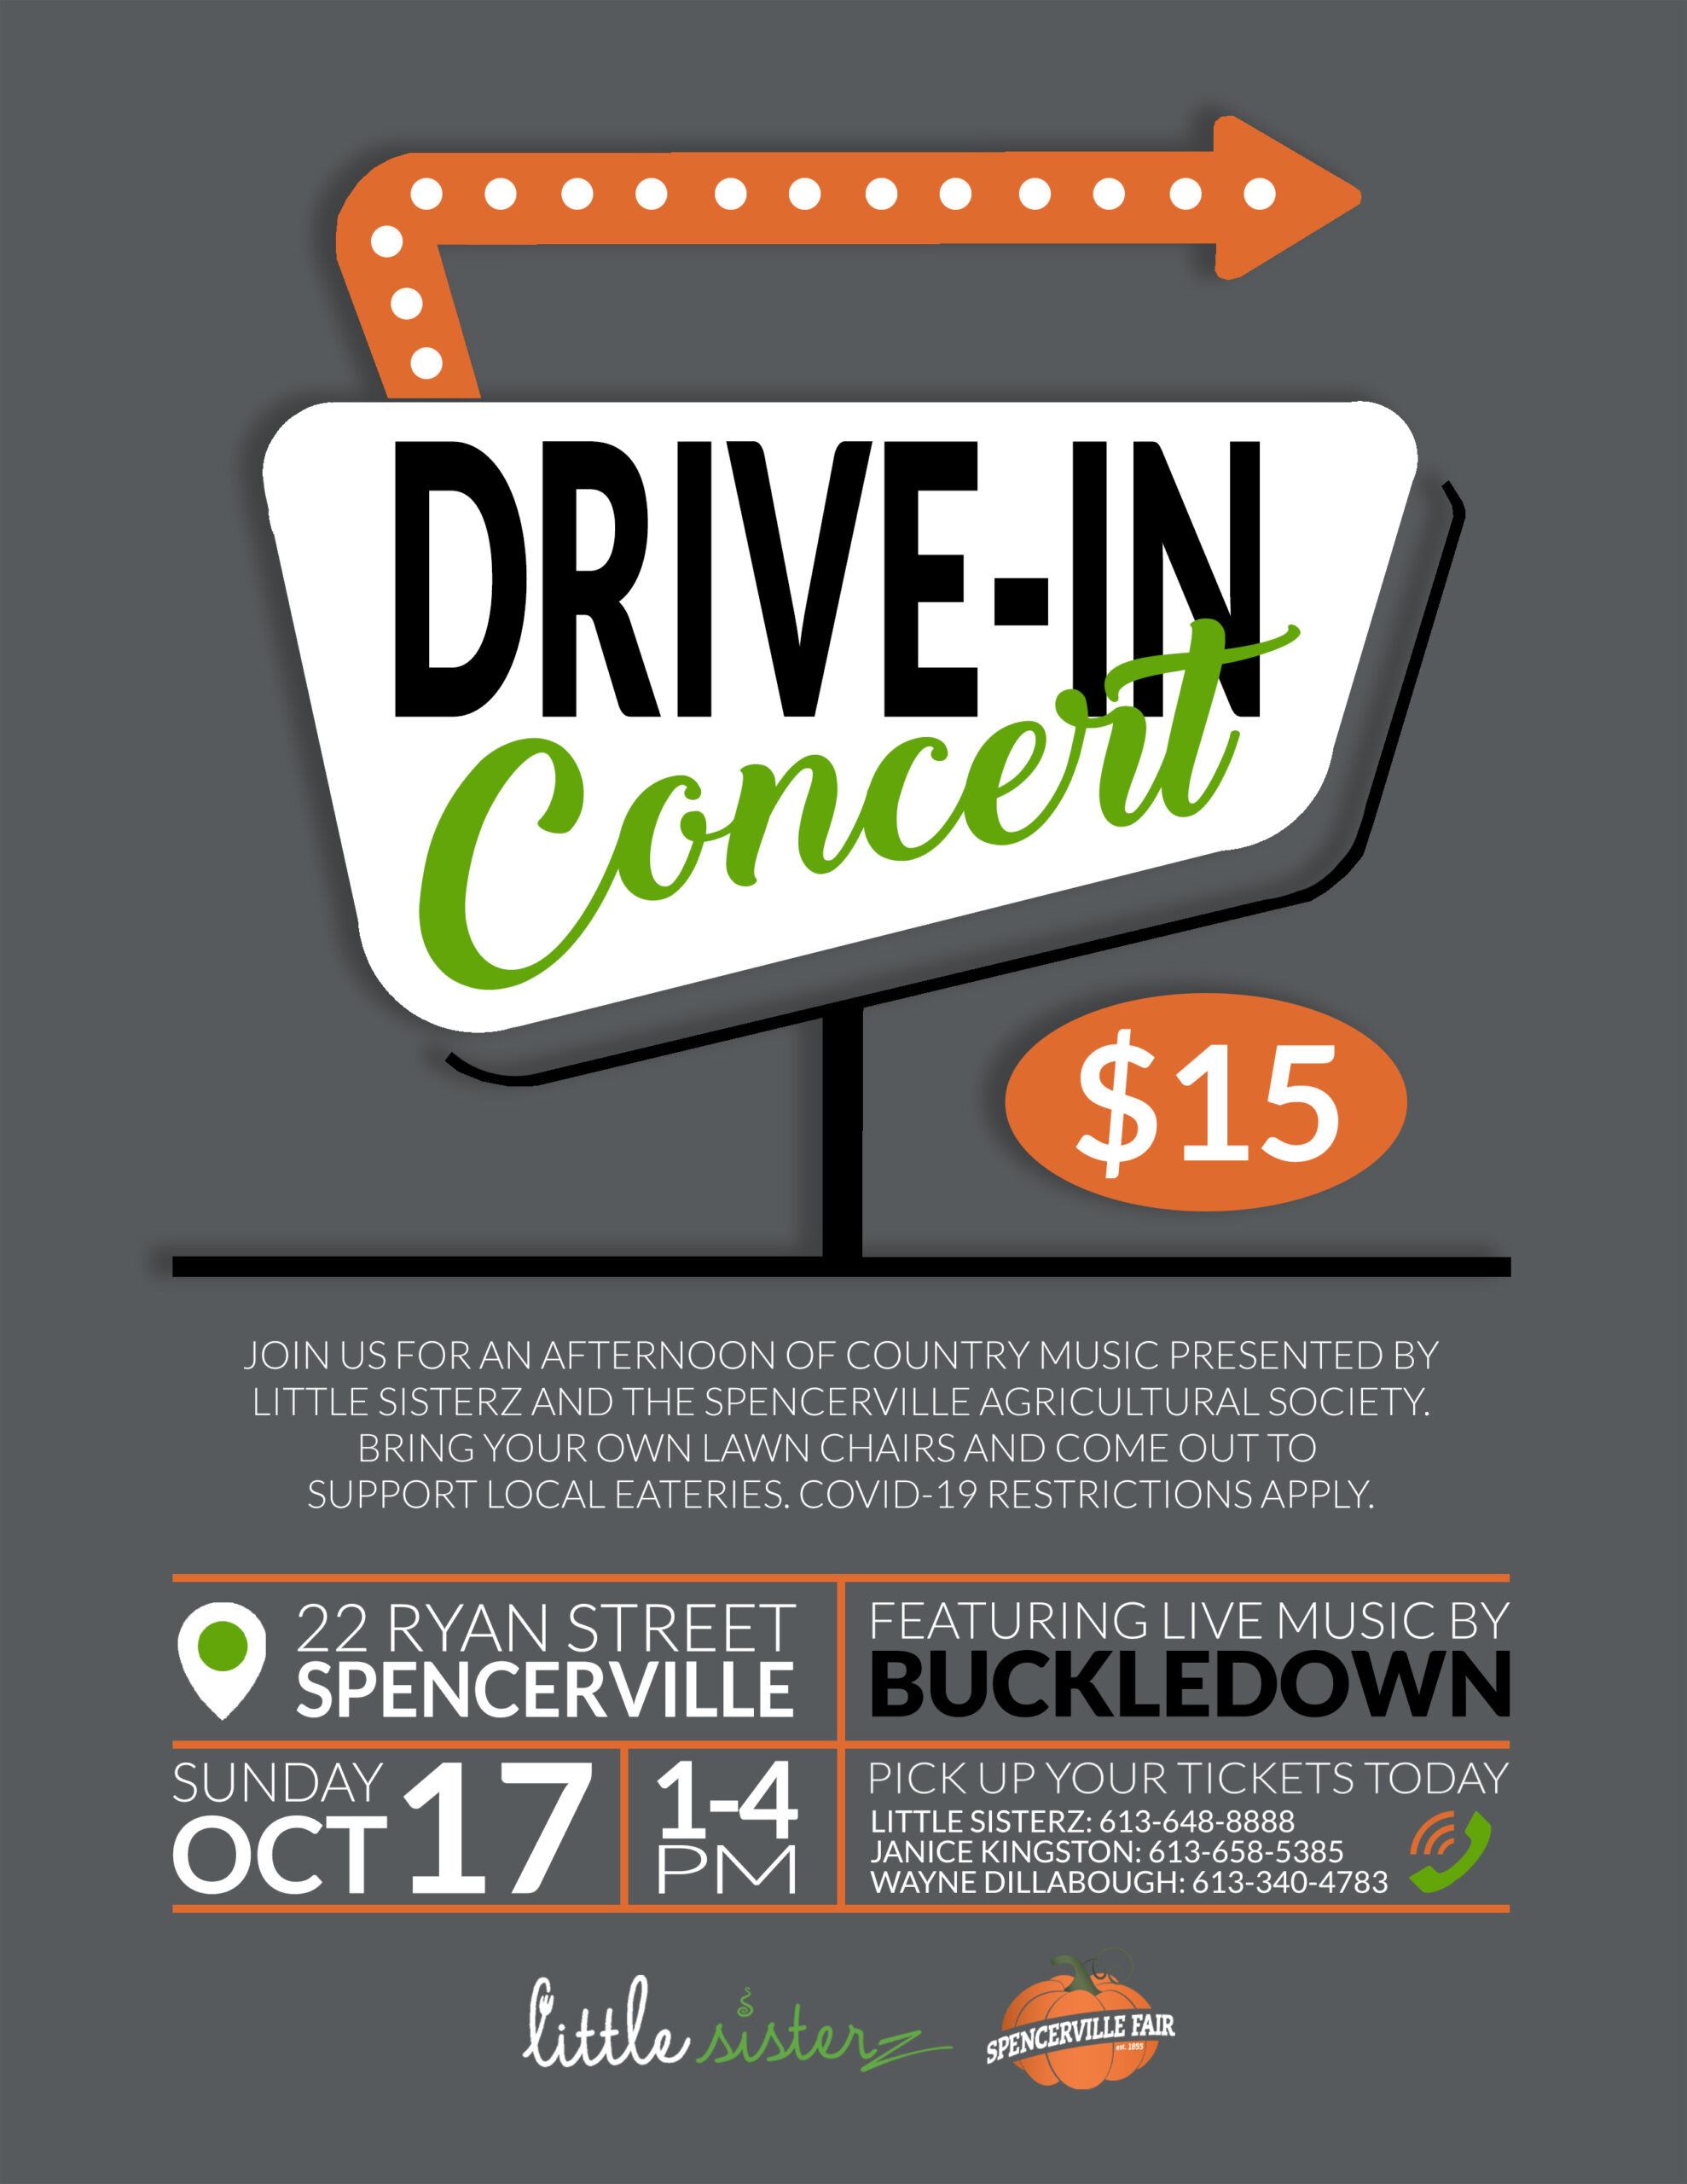 Drive-In Tailgate Concert (Spencerville Fair Event) @ Spencerville | Ontario | Canada